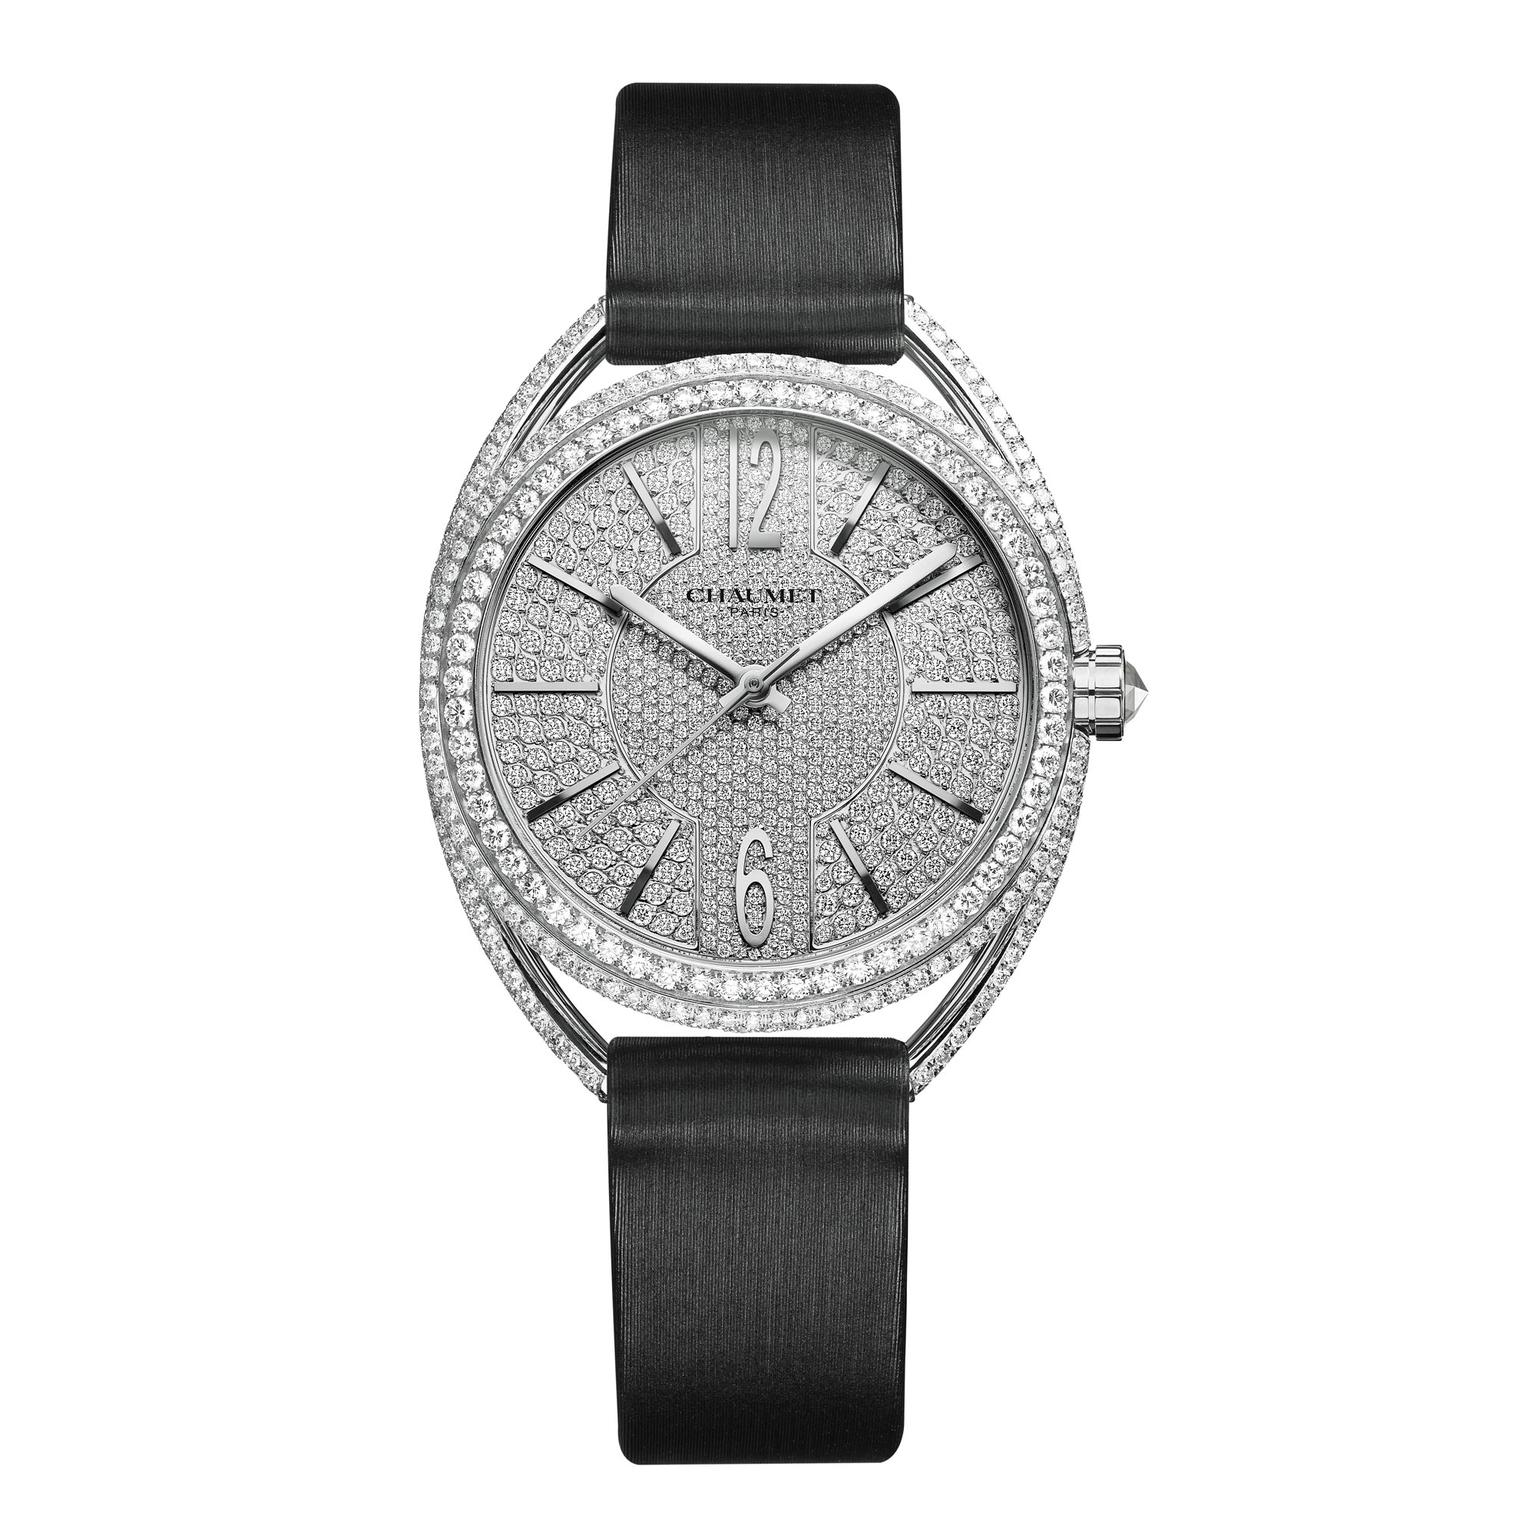 Liens de Chaumet diamond watch